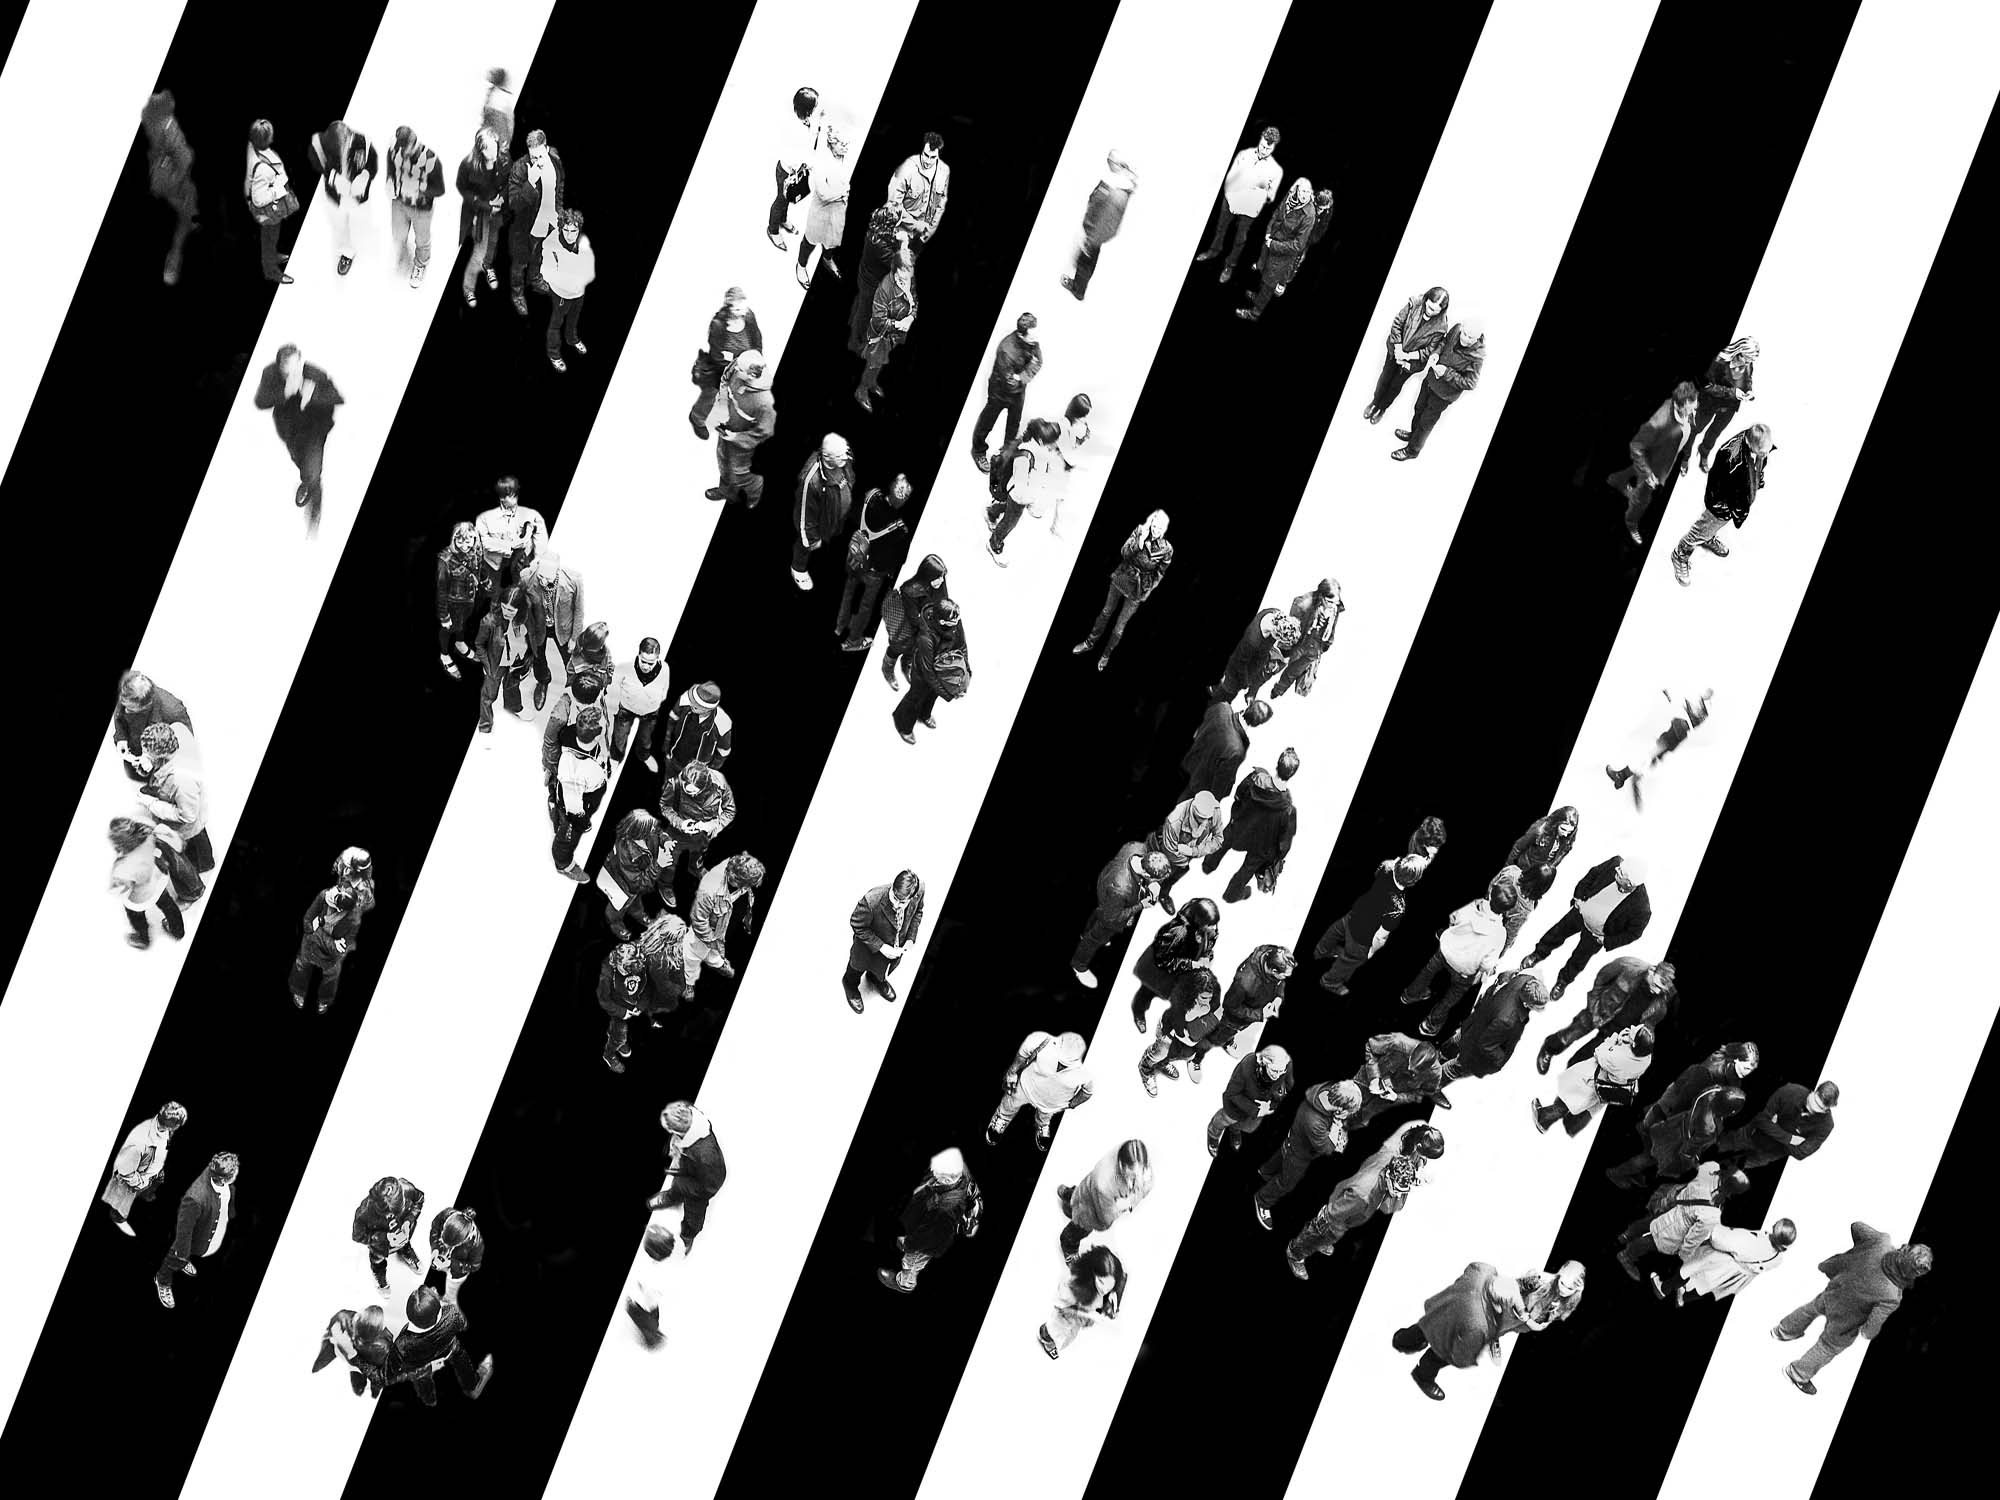 Glass printed People Standing on Zebra Stripes